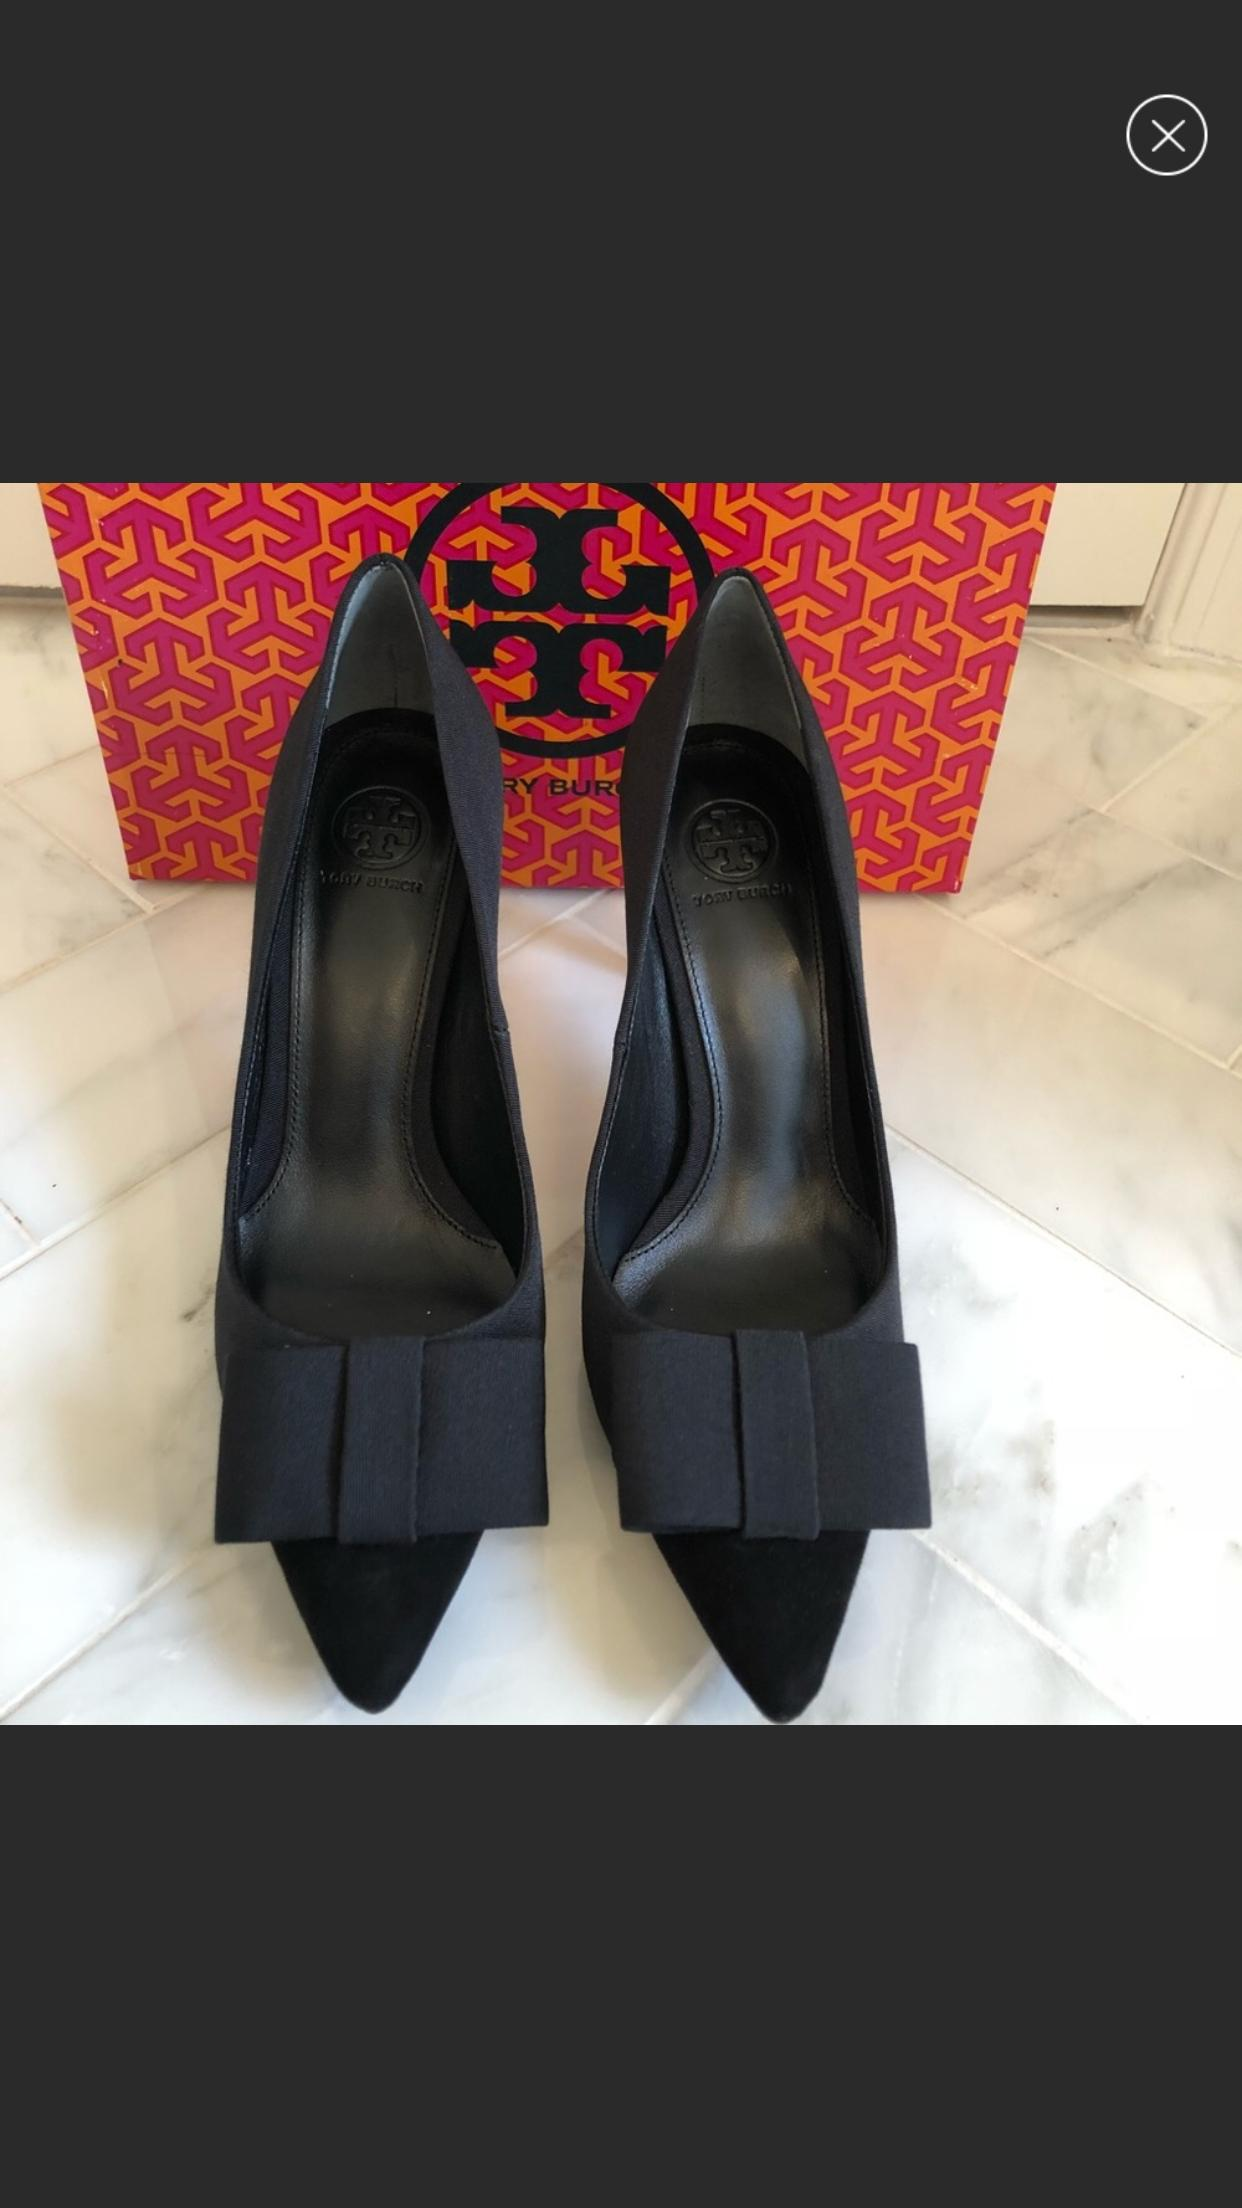 9f8d62710616 Tory Burch Black Formal Shoes Size US US US 8.5 Regular (M